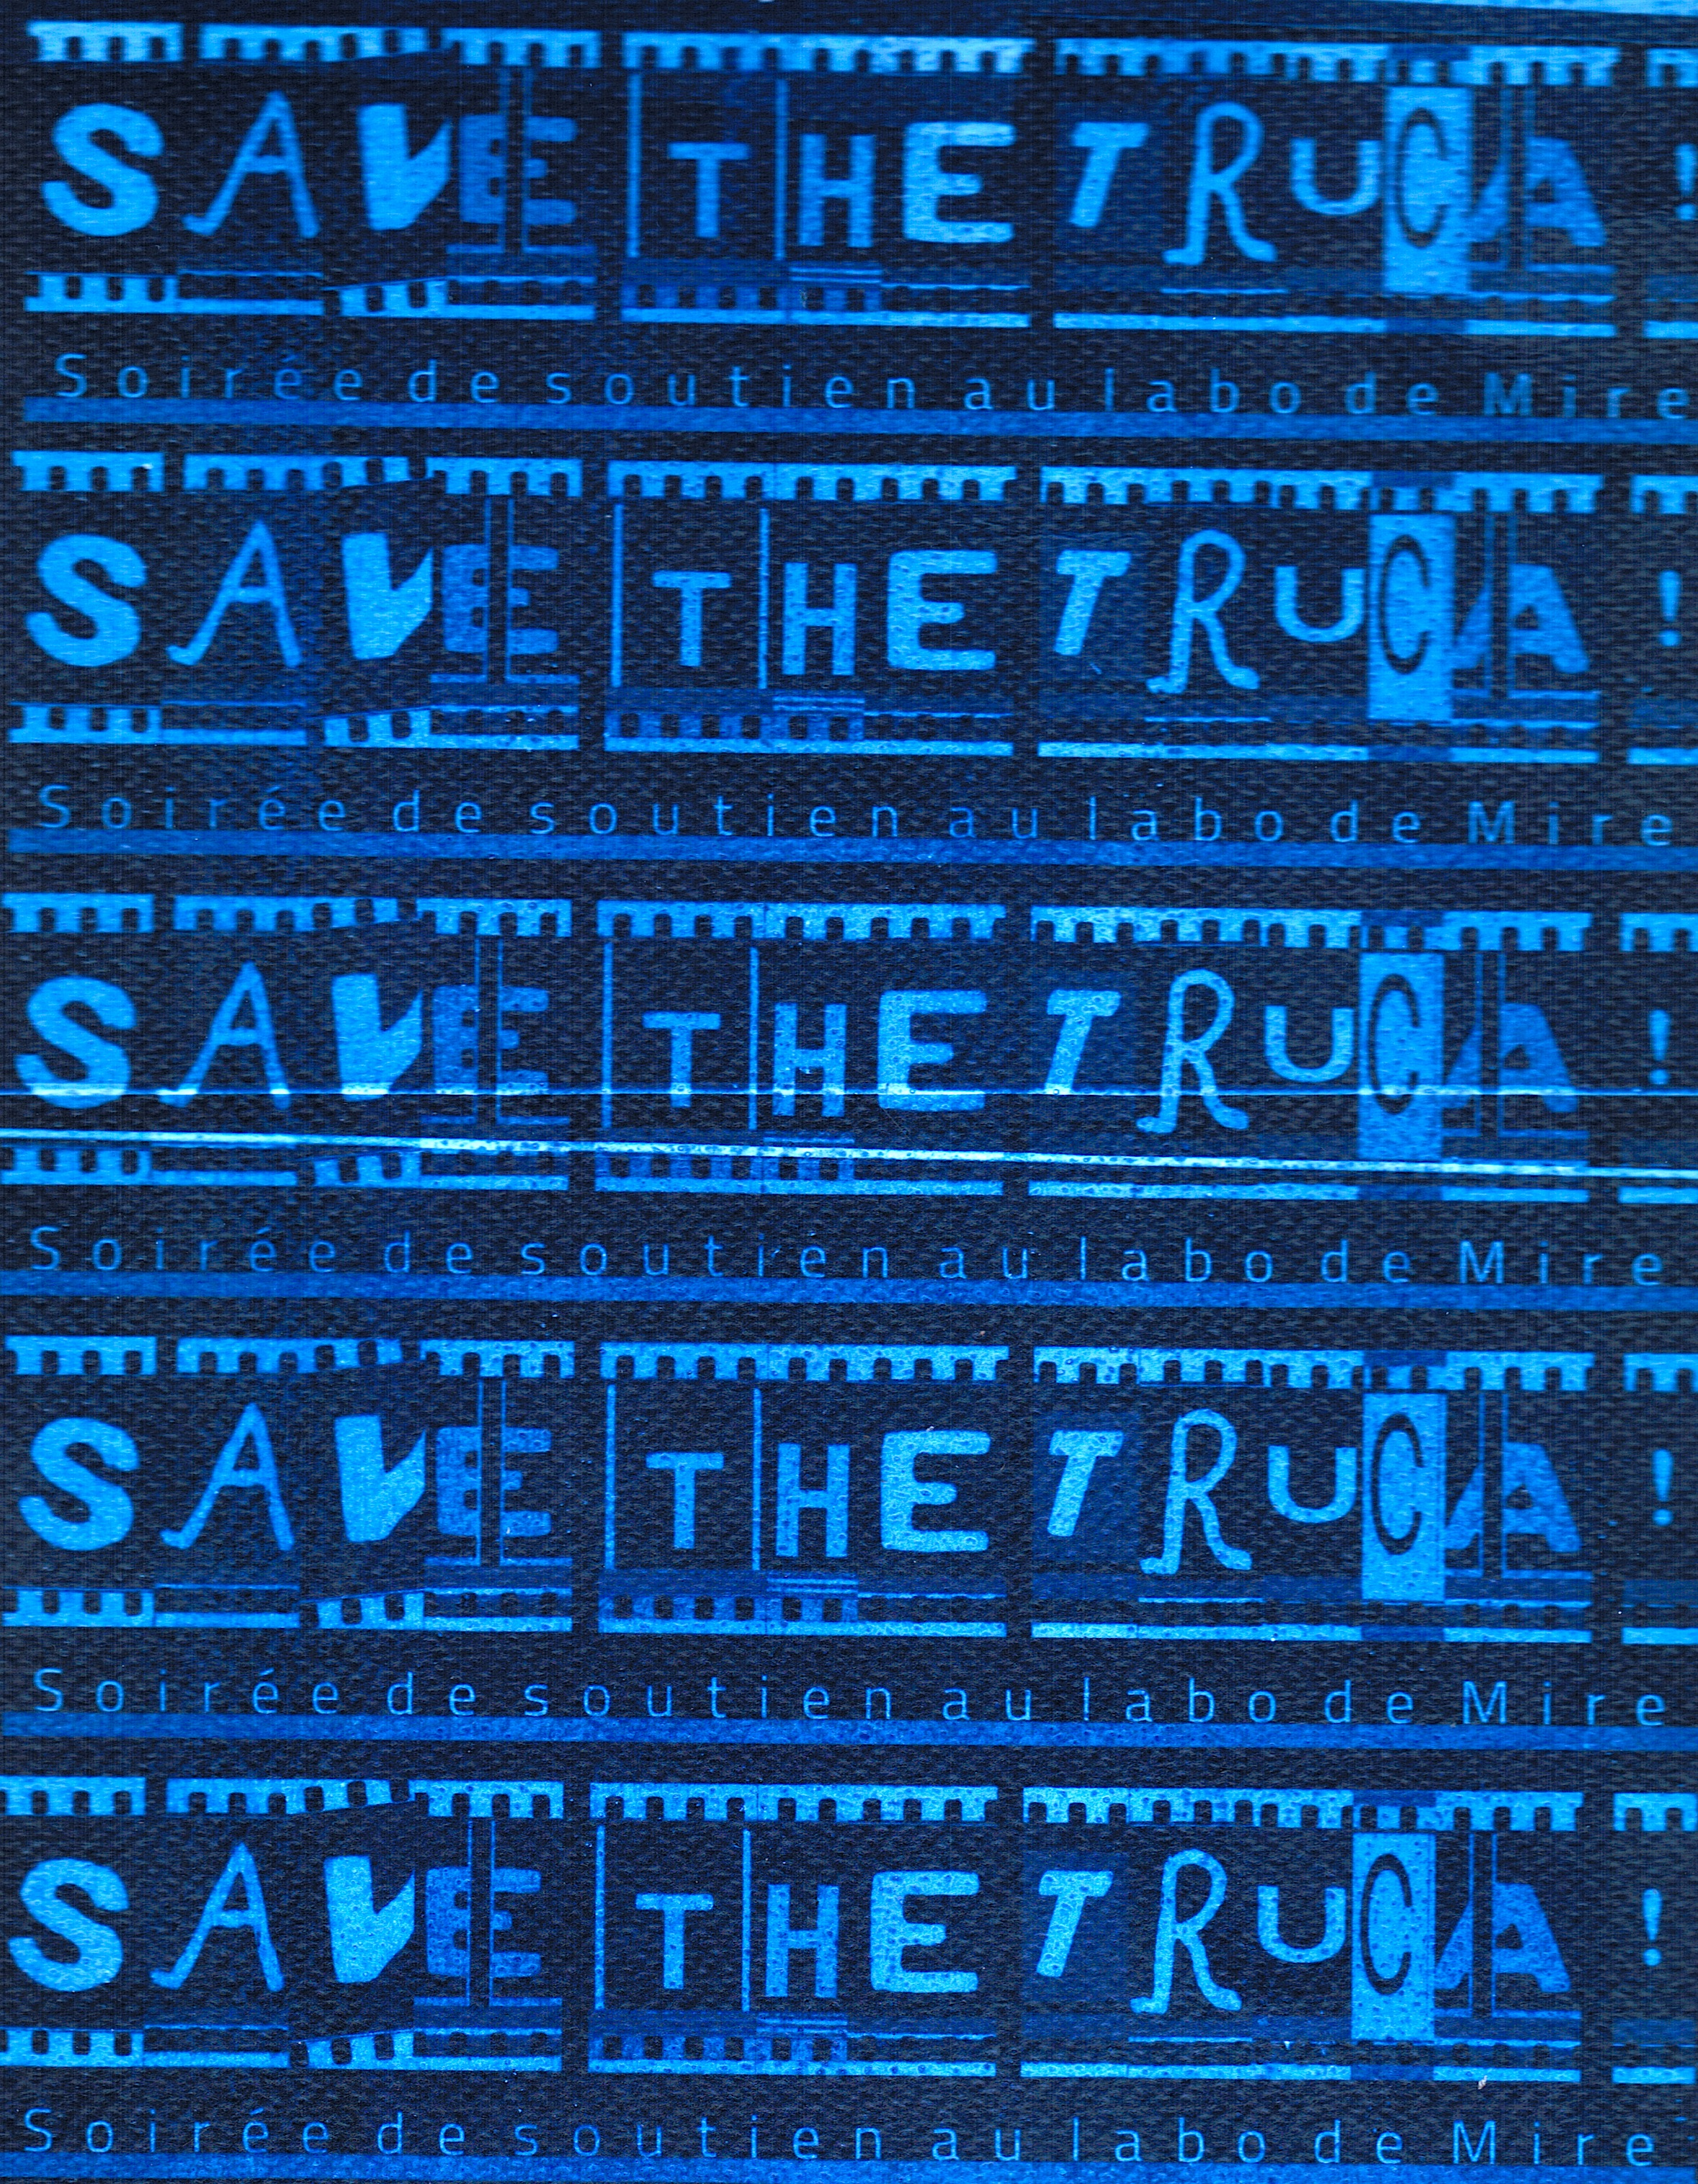 SAVE THE TRUCA